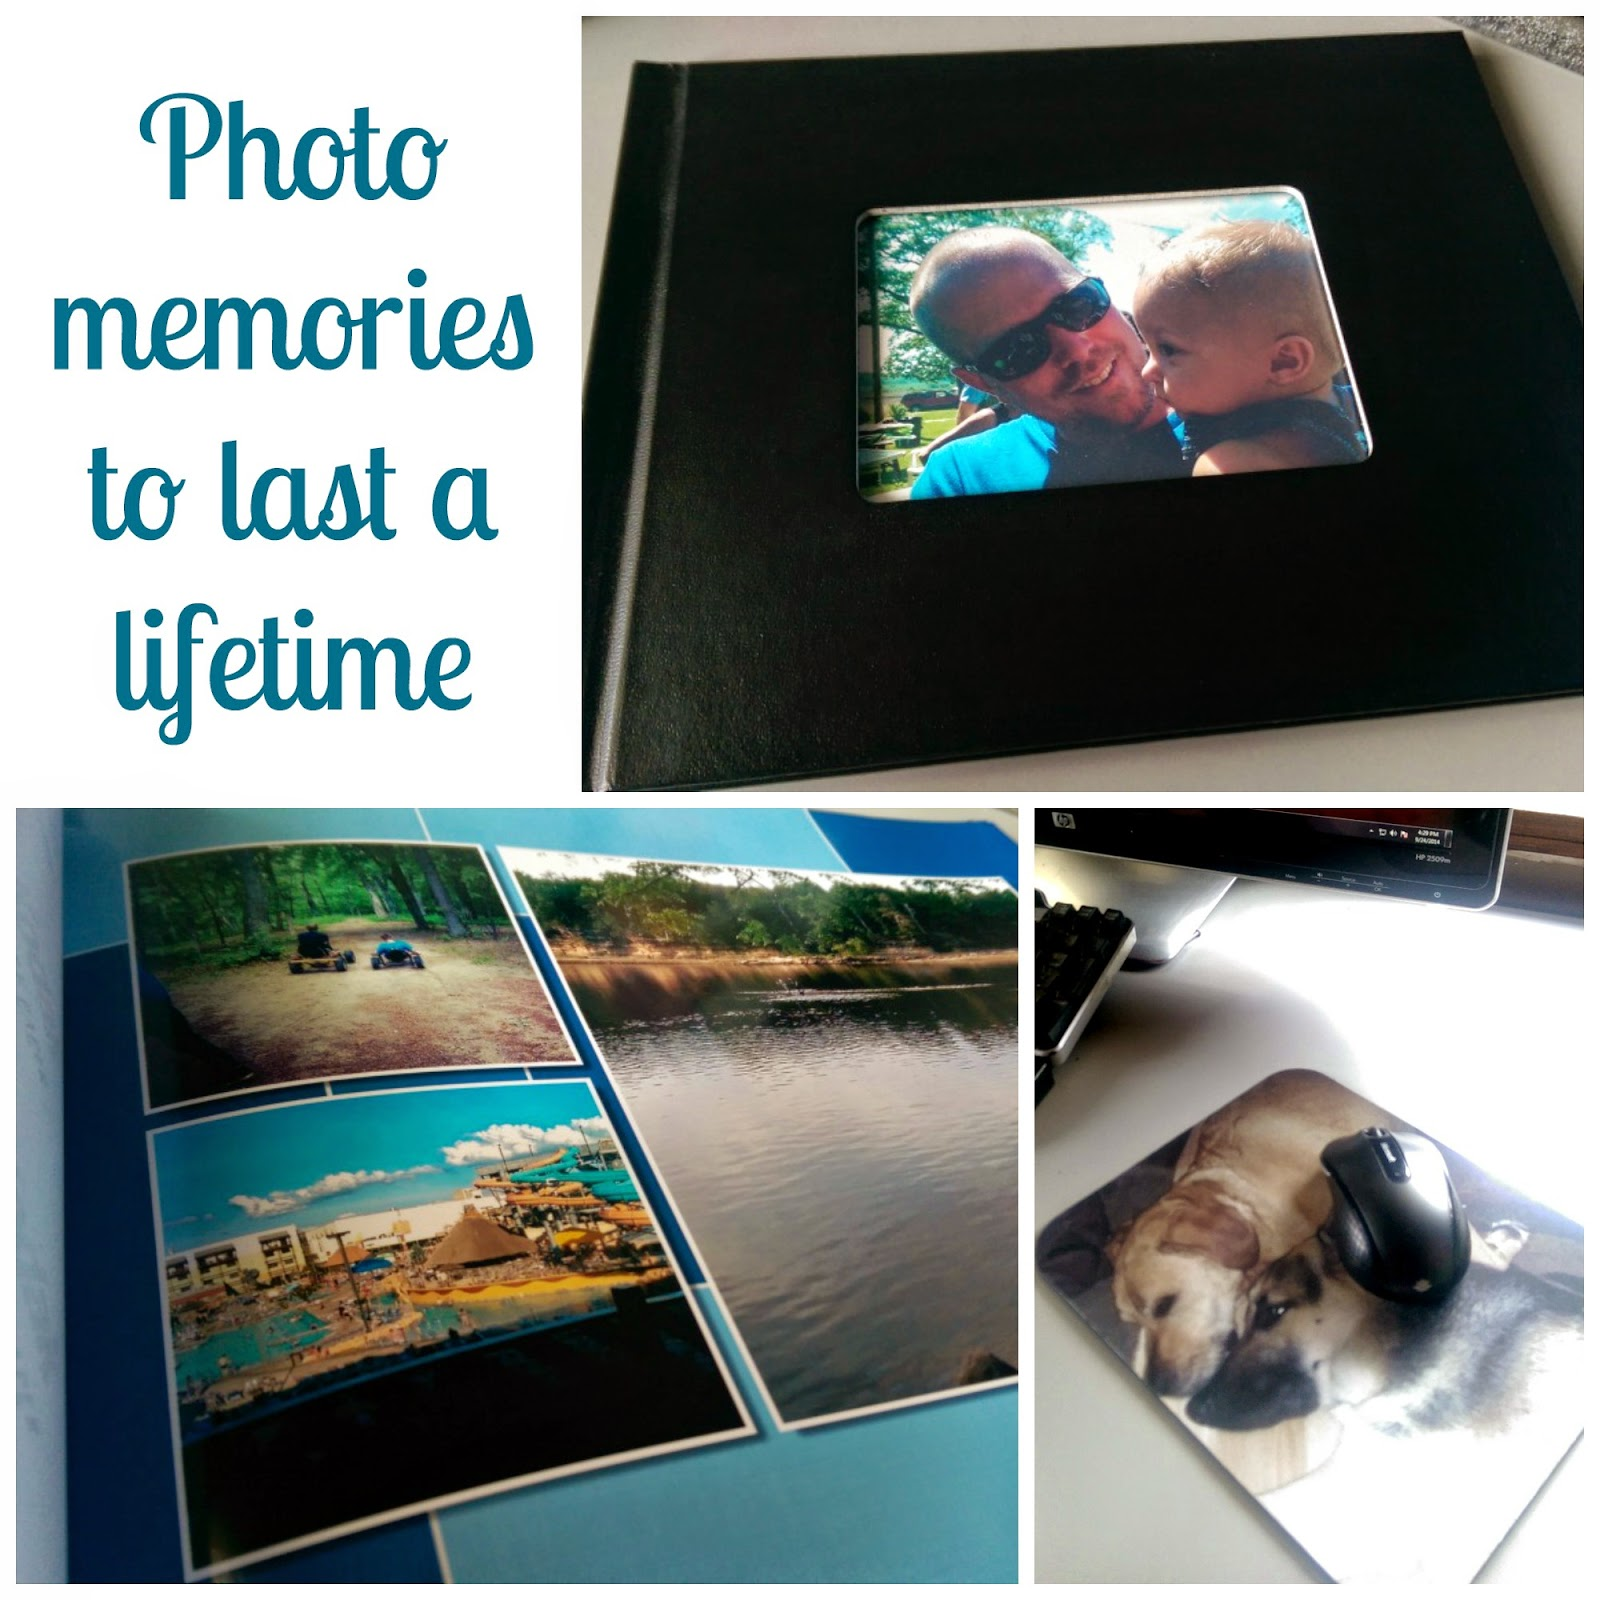 photo memories to last a lifetime with the help of cvs